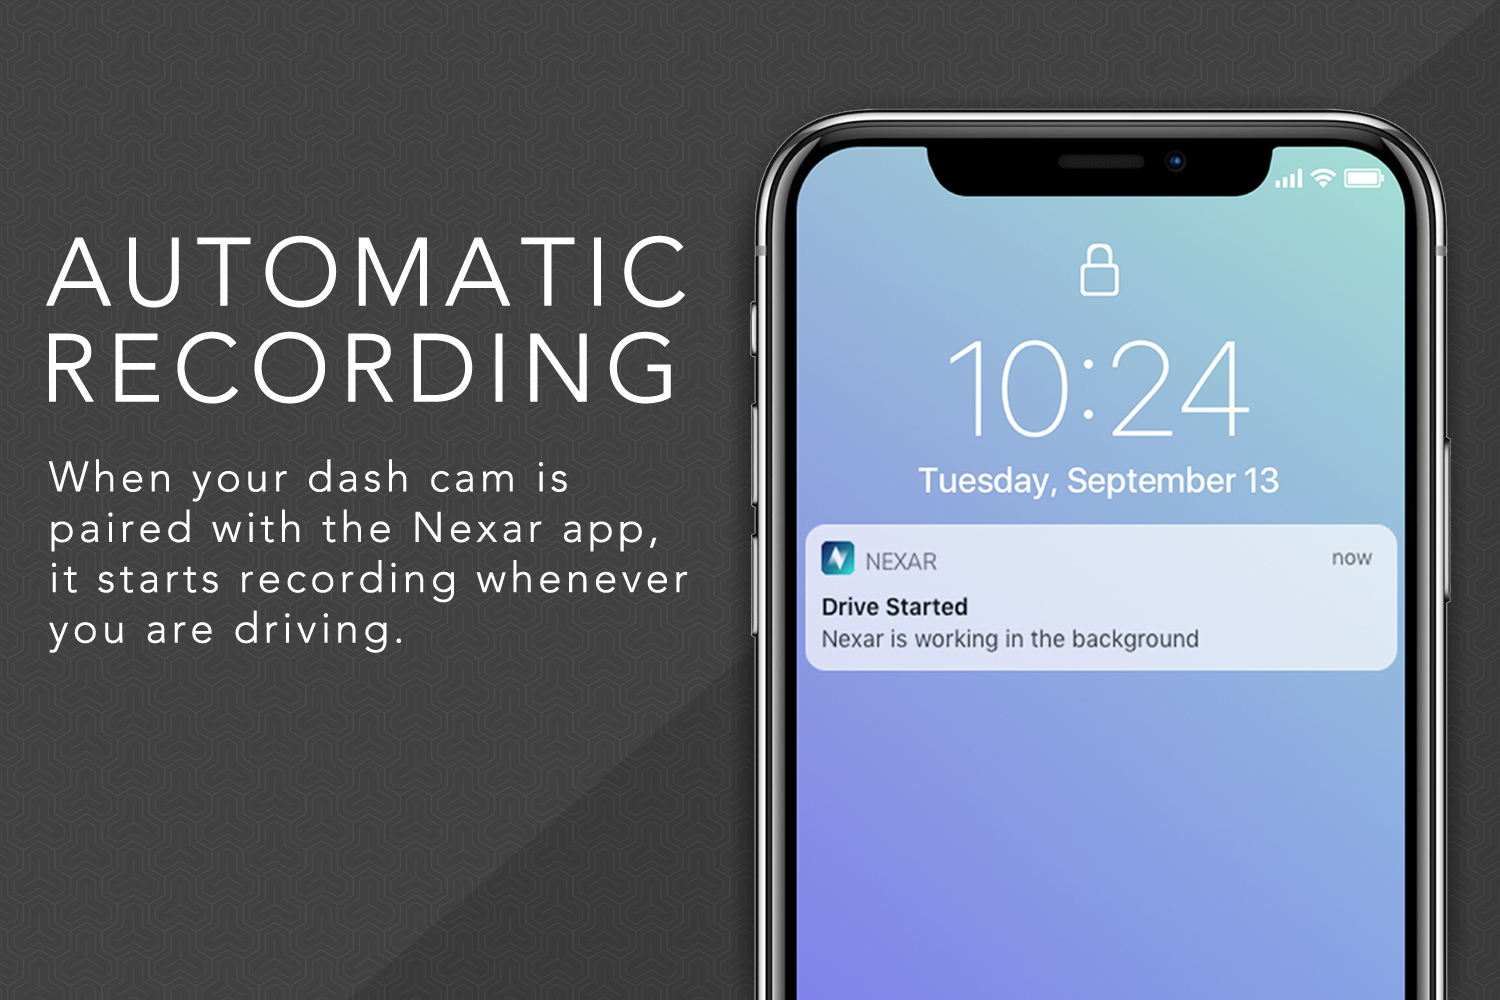 Automatic Recording, When your dash cam is paired with the Nexar app, it starts recording whenever you are driving.